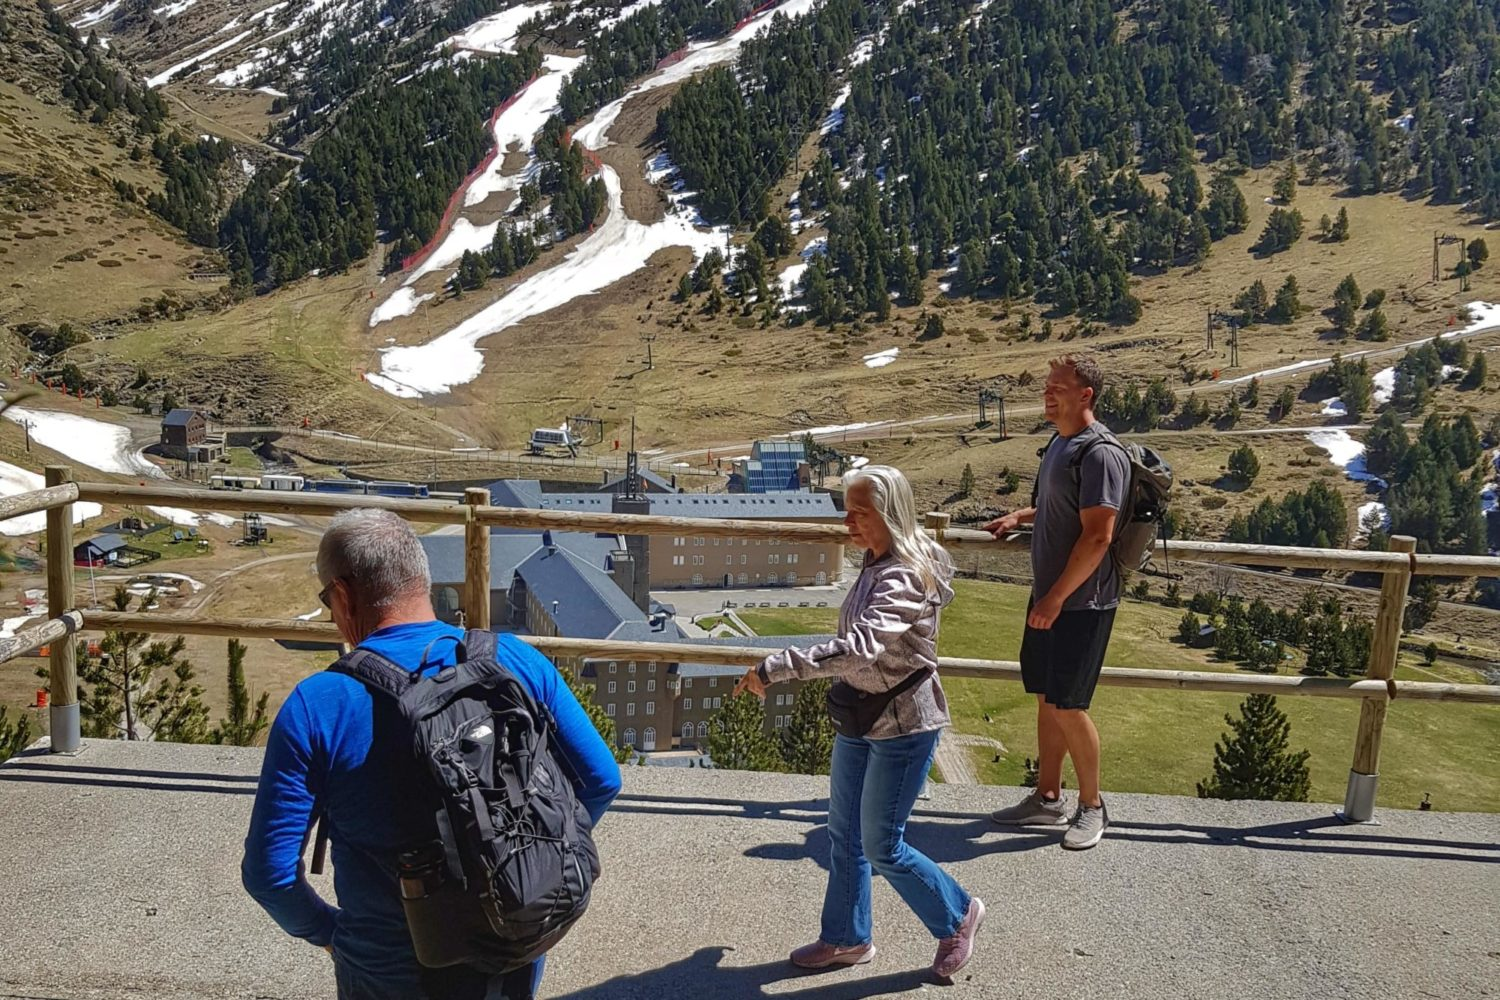 Leave the hustle and heat of Barcelona to explore truly majestic views in the Pyrenees